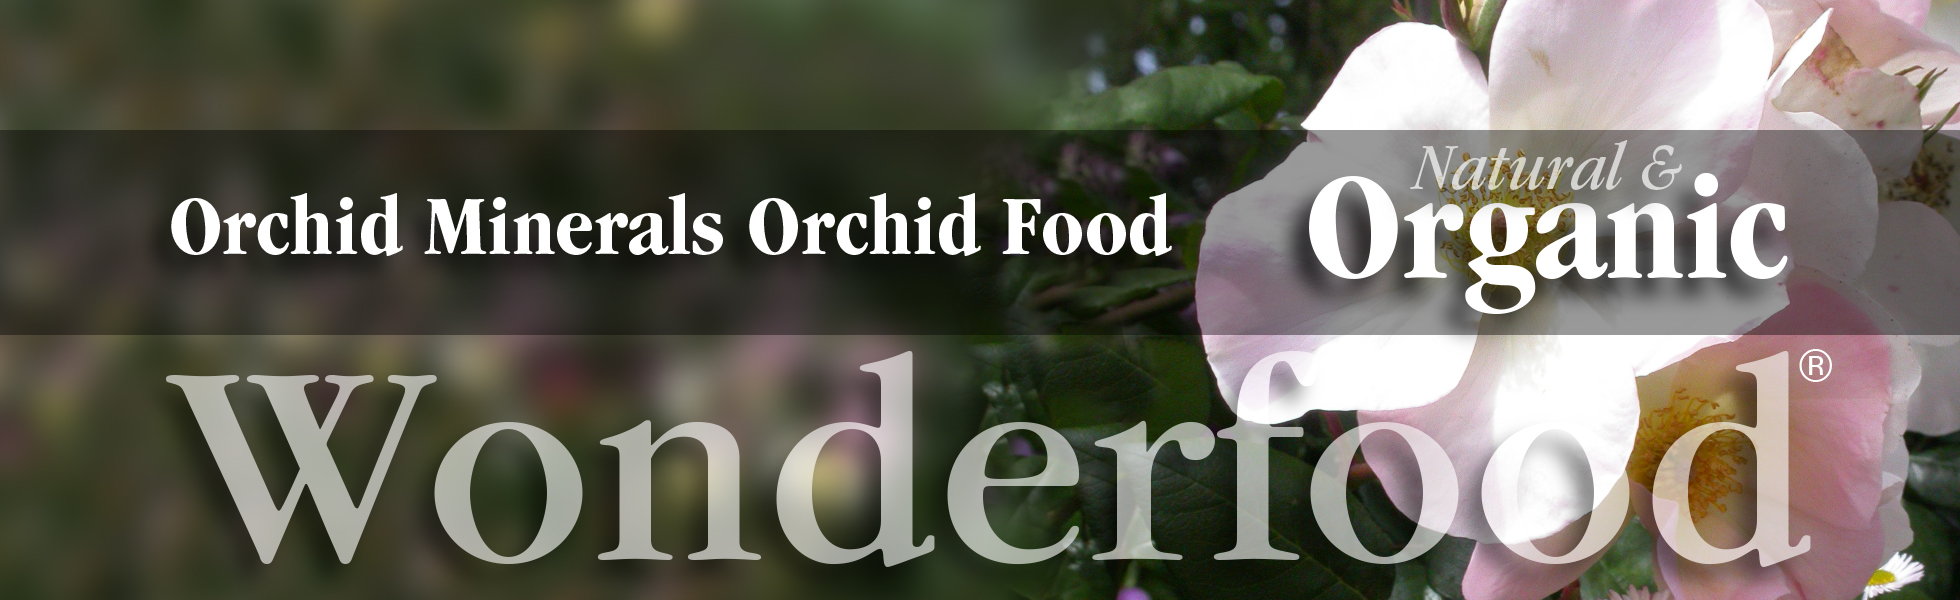 Organic orchid food and plant food for healthy, colorful, vibrant orchids